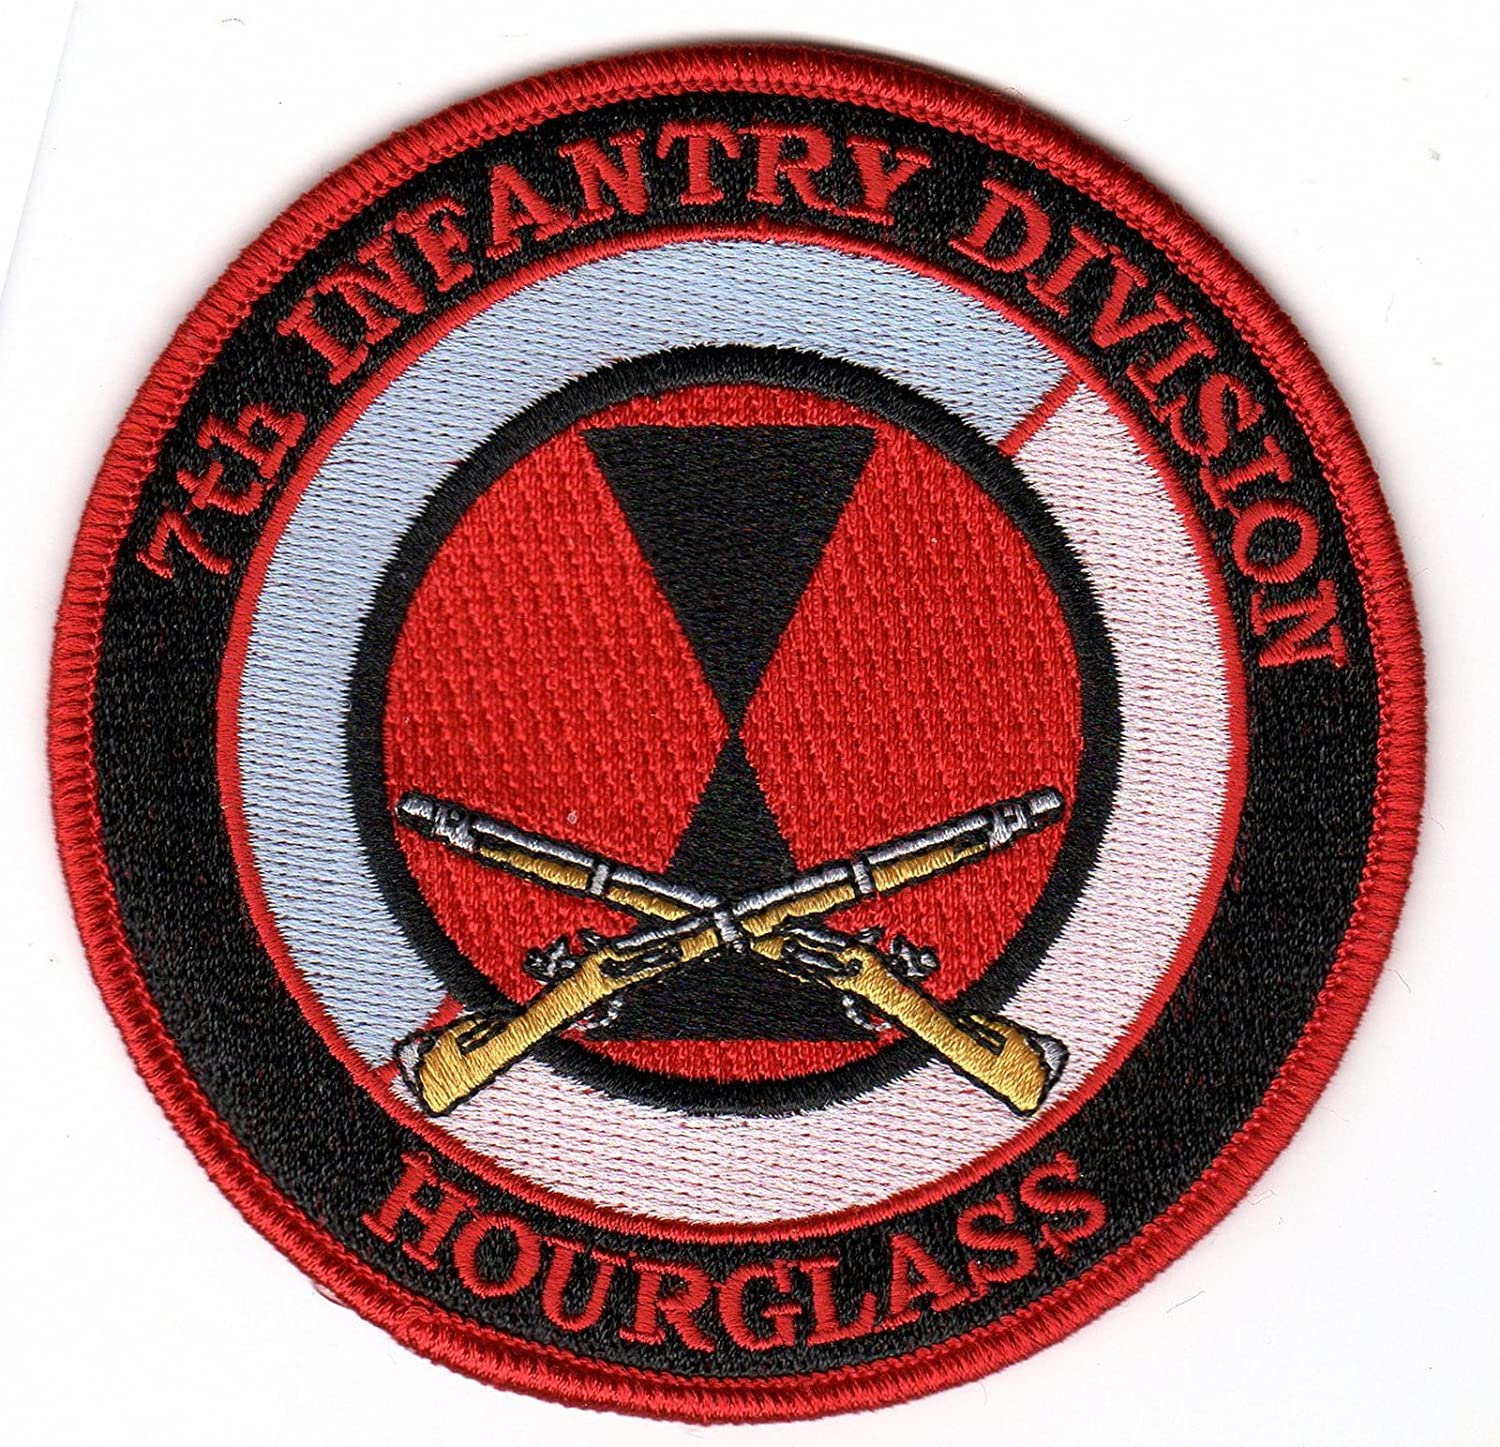 Amazon.com  7th Infantry Division Hourglass Patch  Everything Else c47f5287e2c